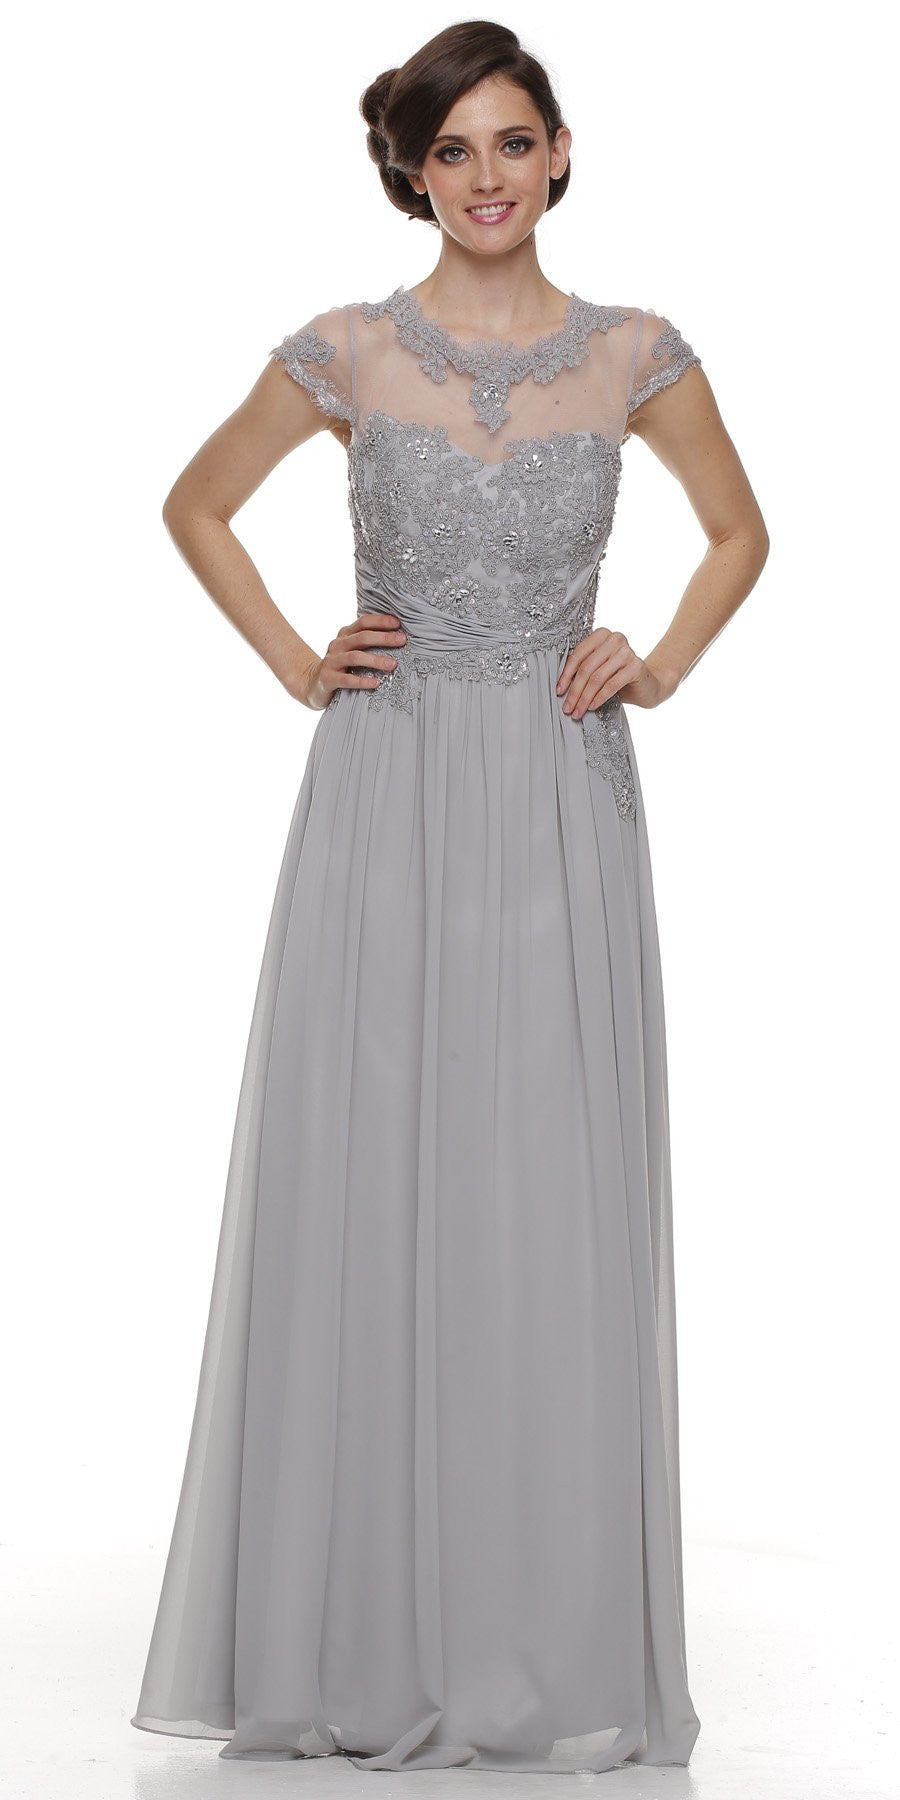 Jewel Neck Keyhole Back Silver A Line Cotillion Dress